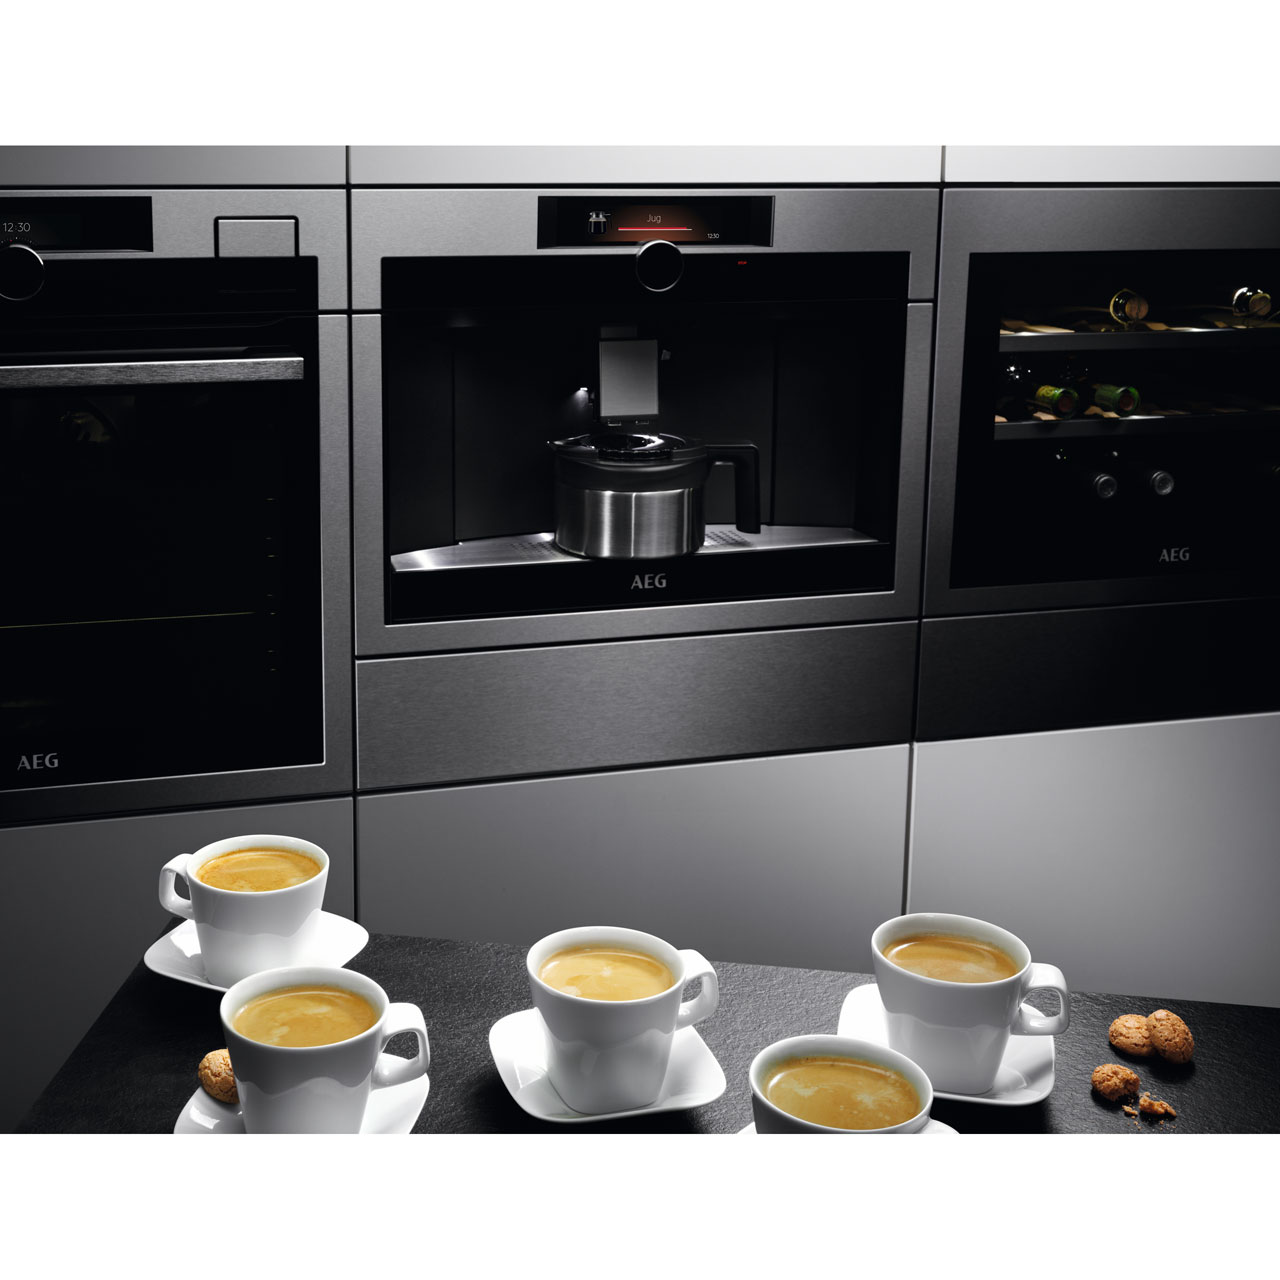 Aeg Kke994500m Built In Bean To Cup Coffee Machine Stainless Steel